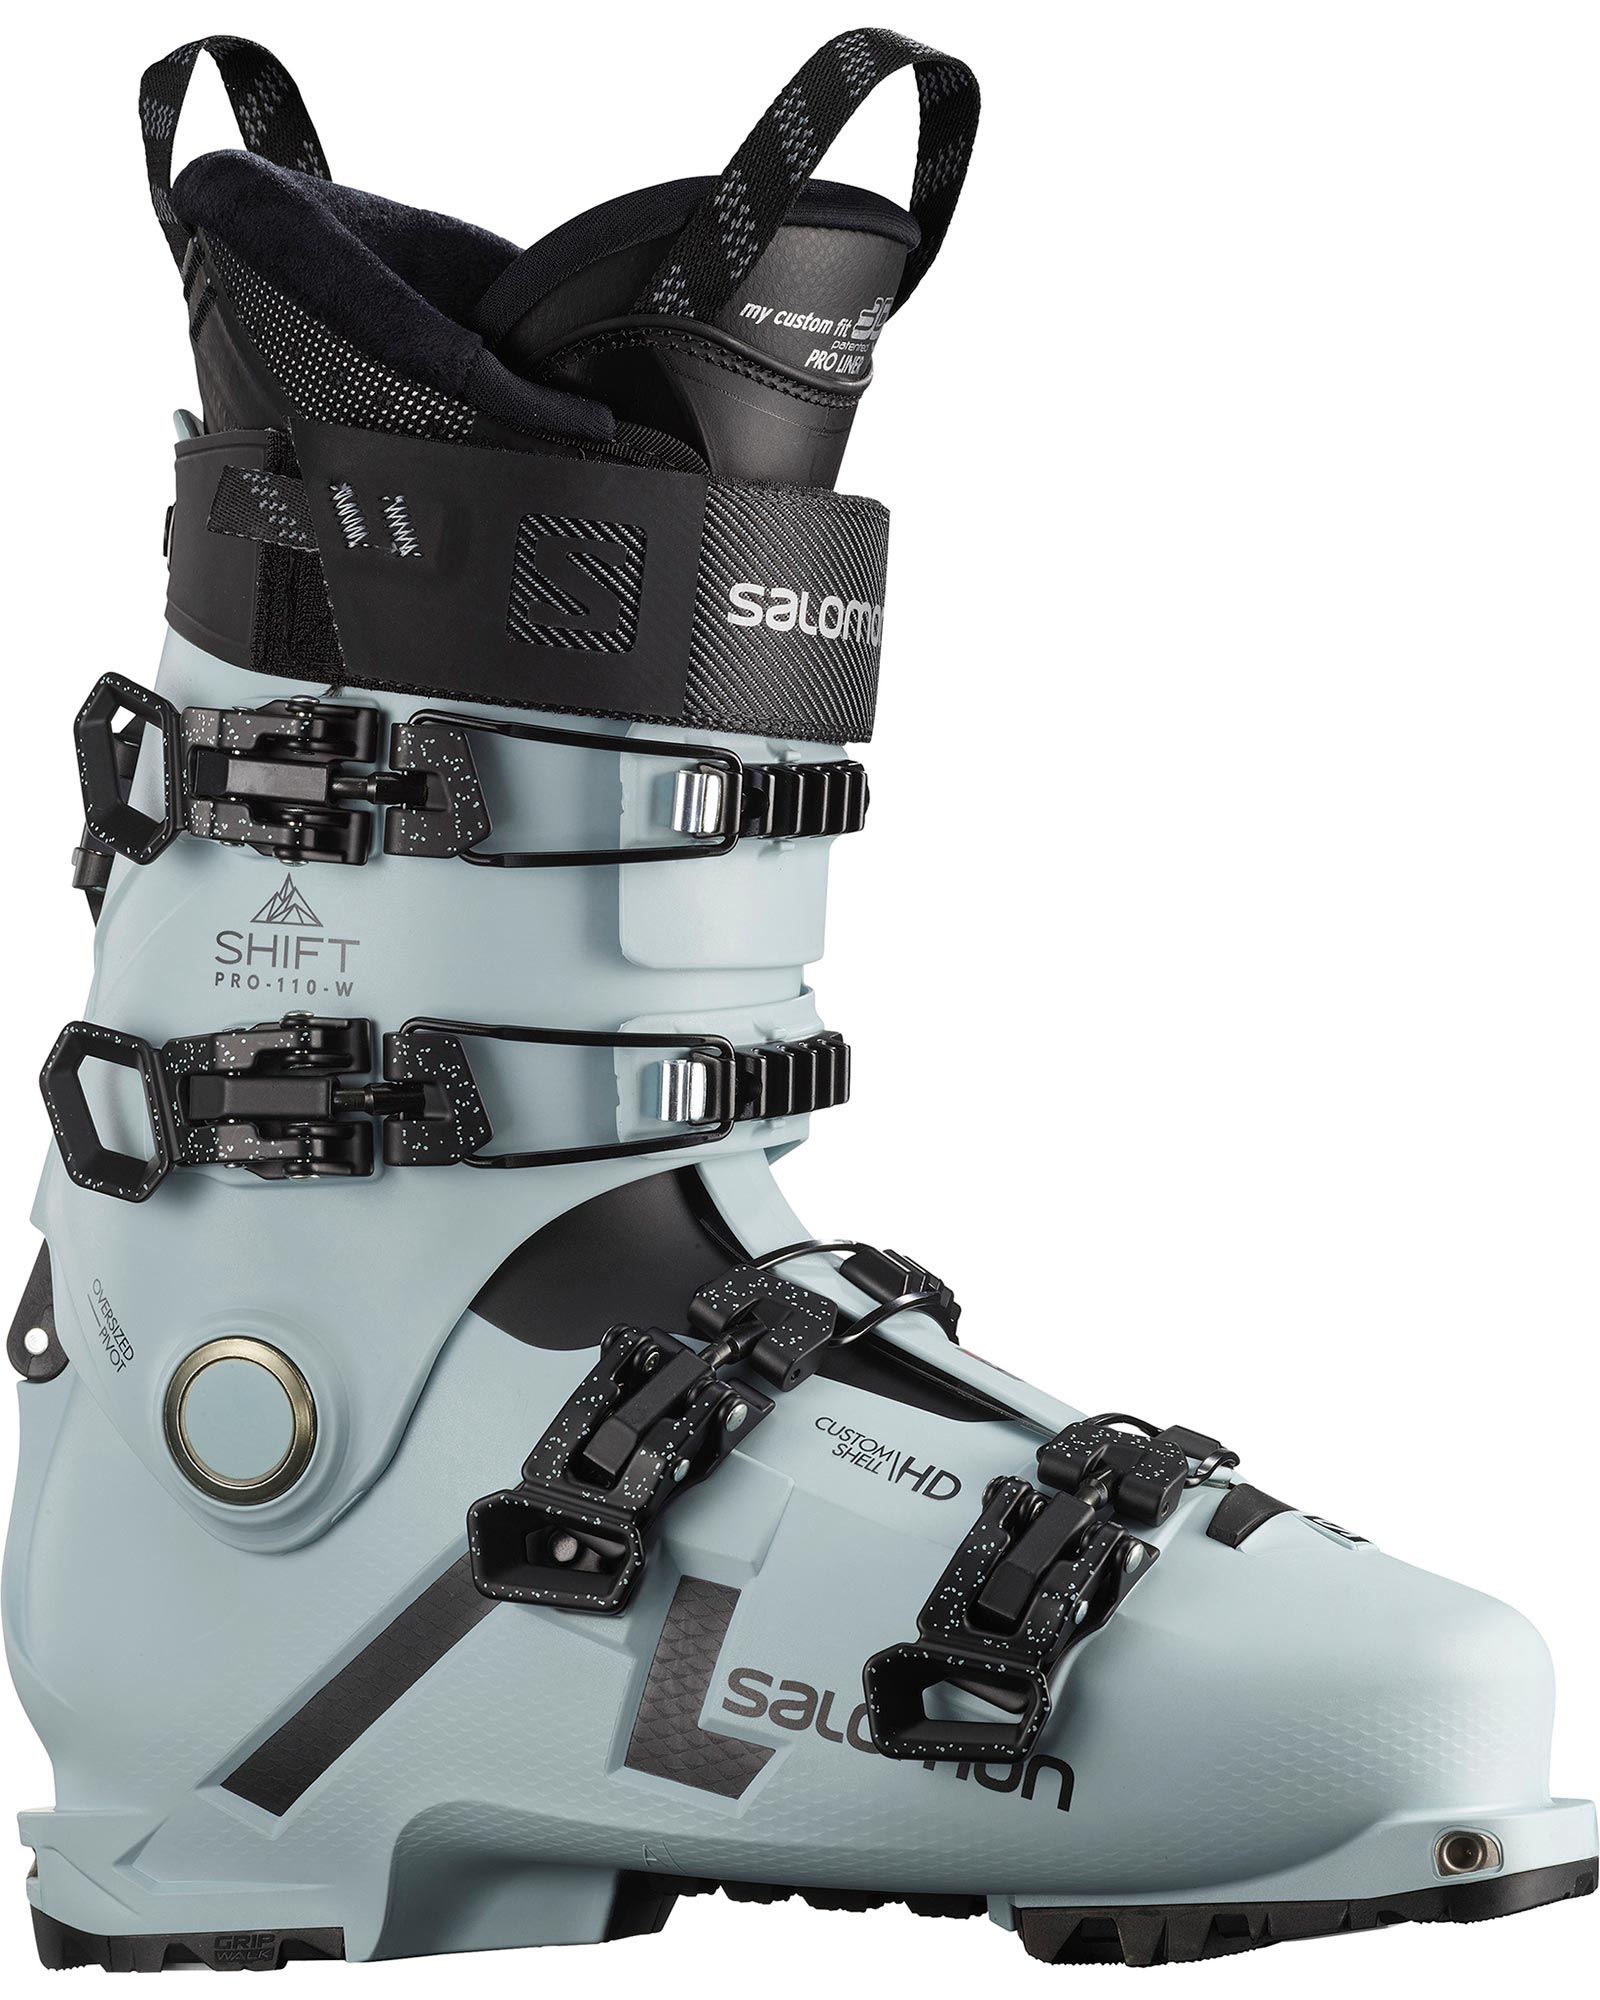 Salomon Women's Shift Pro 110 W AT Backcountry Ski Boots 2020 / 2021 0